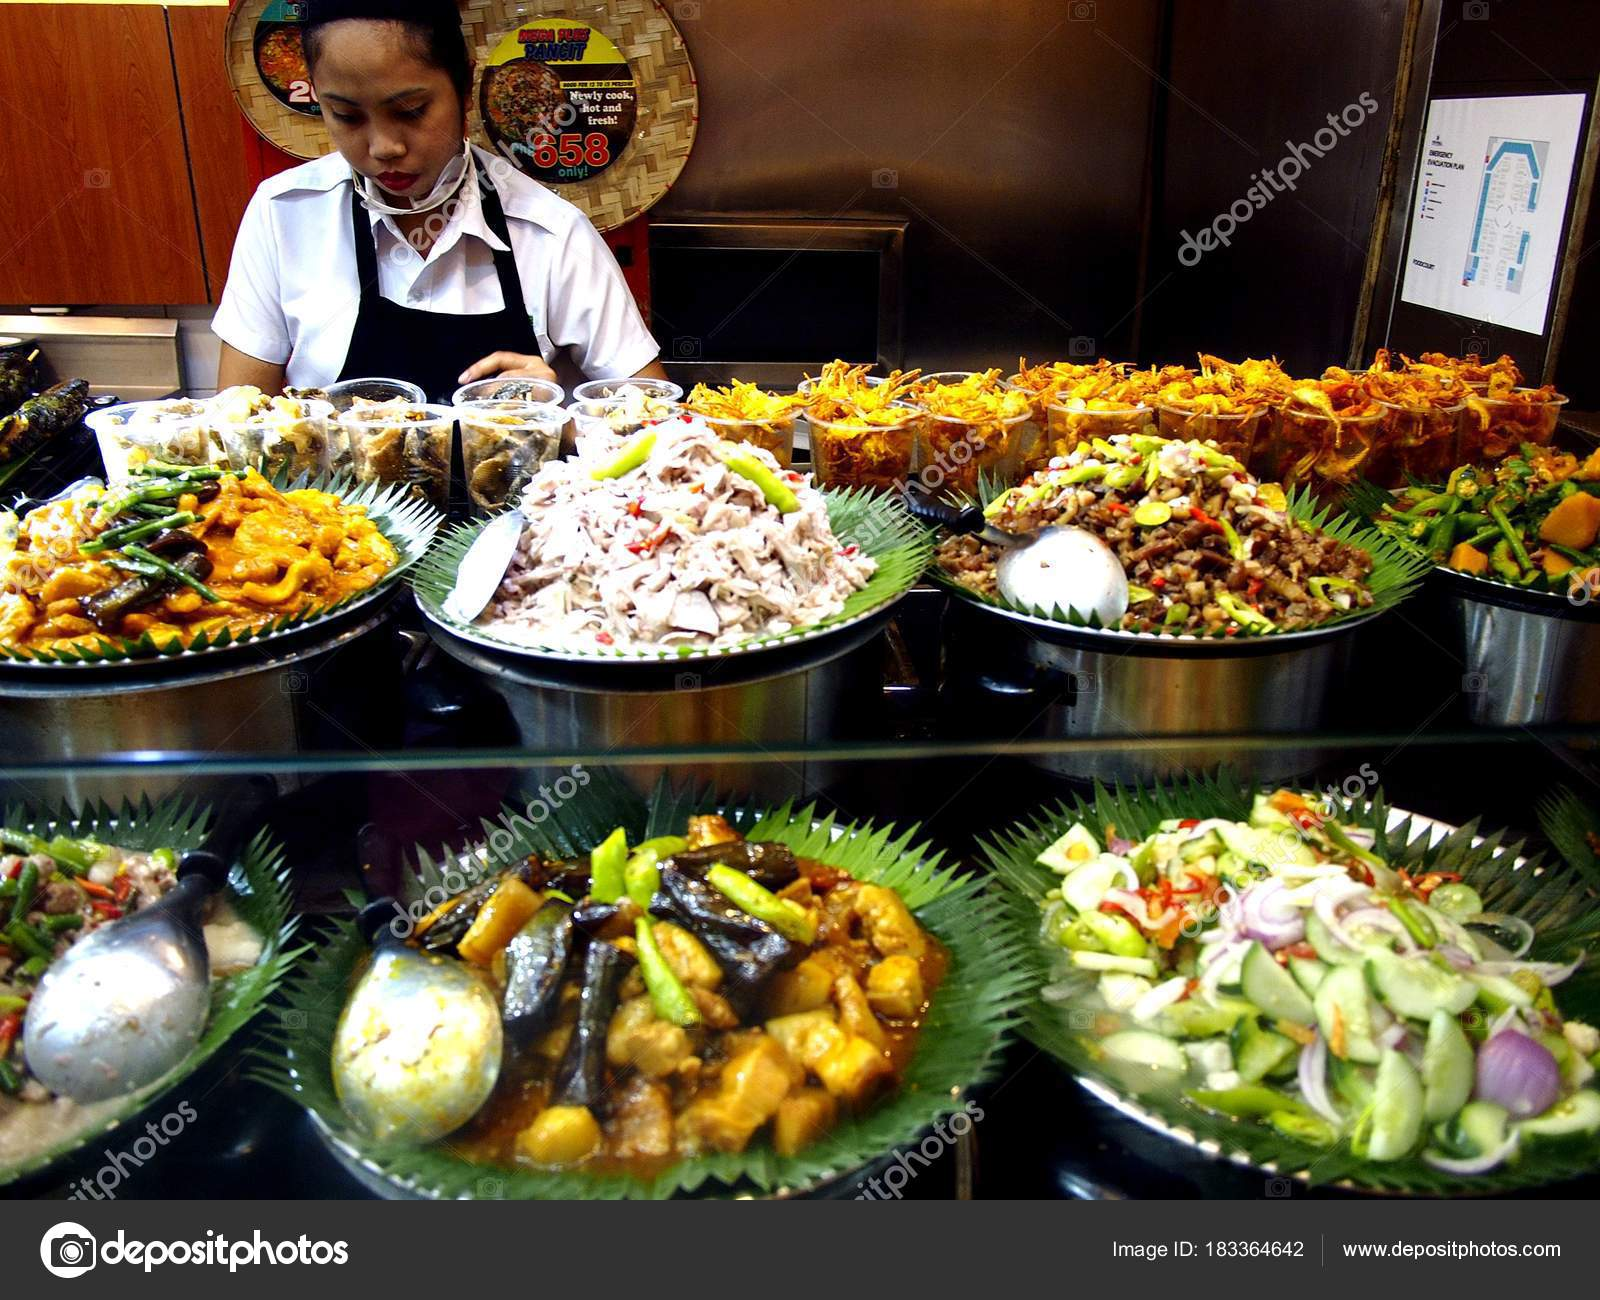 Assorted Filipino dishes on display at a food kiosk in a